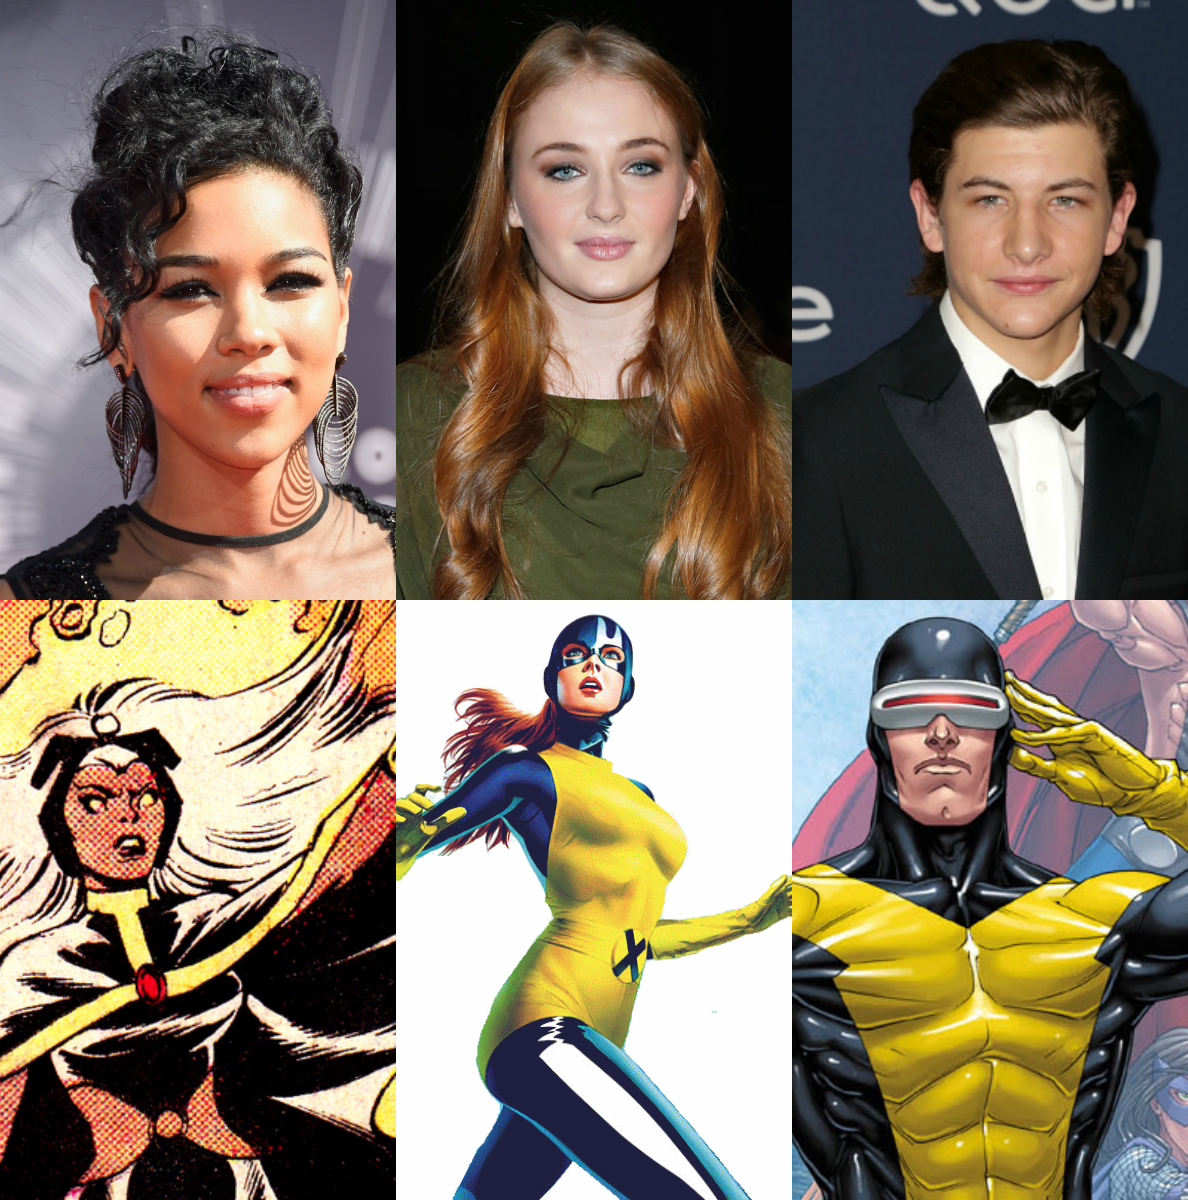 Alexandra Shipp, Frazer Harrison/Getty Images, Tornade, http://cdn.pastemagazine.com/www/blogs/lists/1stormdavefinal.png, Sophie Turner, Cindy Ord/Getty Images North America, Jean Grey, http://www.mundomarvel.com/personajes/jean-grey.html, Tye Sheridan, WENN.com, Cyclope,  http://s884.photobucket.com/user/Lars_Dan/media/Imagen5-14.png.html, Droits Réservés